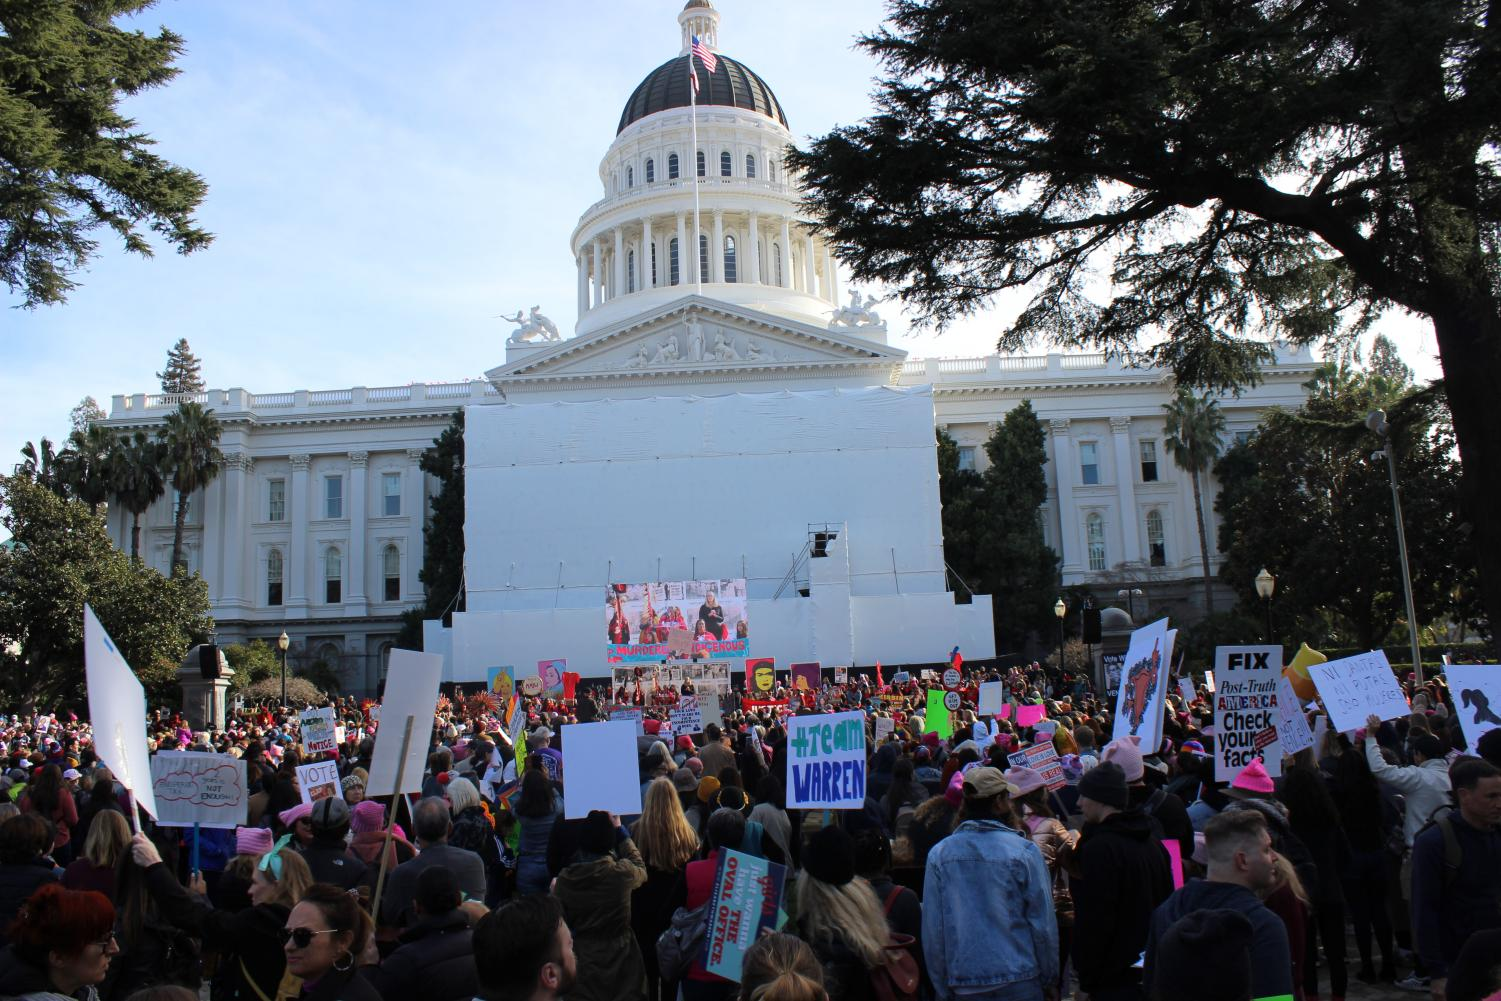 The march on Jan. 18 began from Southside Park and stopped at the State Capitol where there were performances, speakers and music shown. People continued to raise their signs up high.